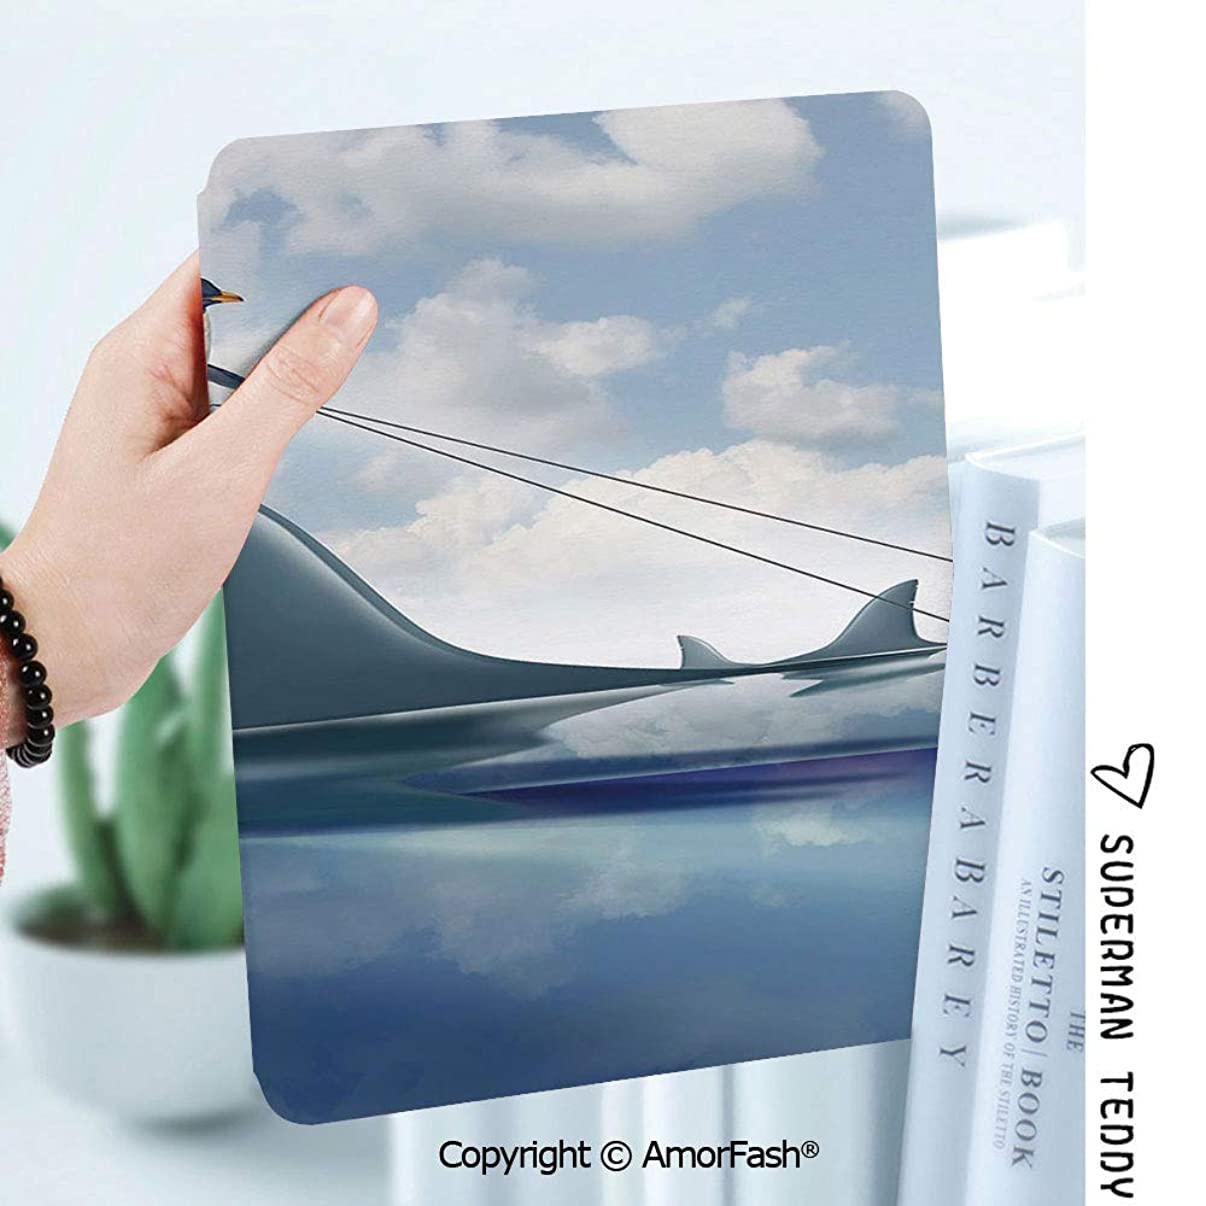 Case for Samsung Galaxy Tab A 8.0 2017 Release for T380/T385,Auto Wake/Sleep,Shark Fear Management Leadership Concept with A Penguin Holding Shark Humor Design Decorative